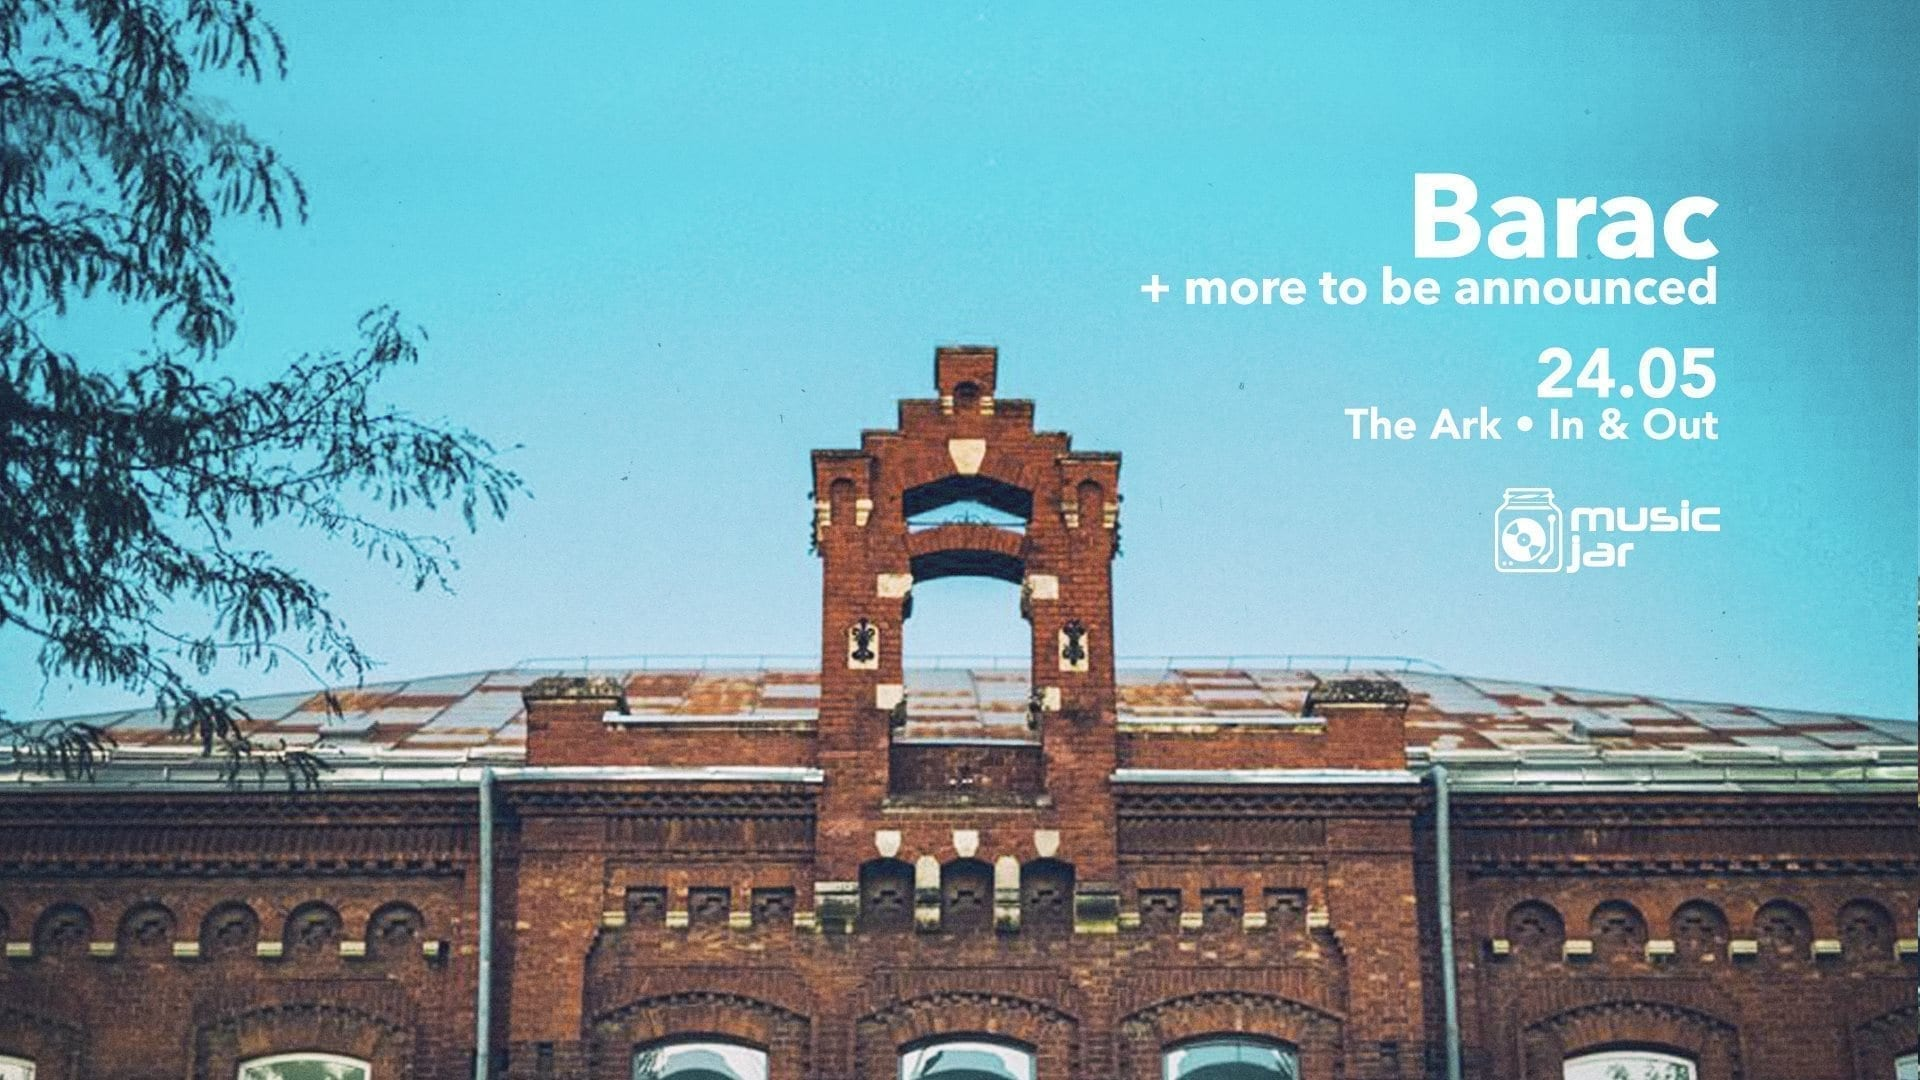 Barac at The Ark | IN & OUT